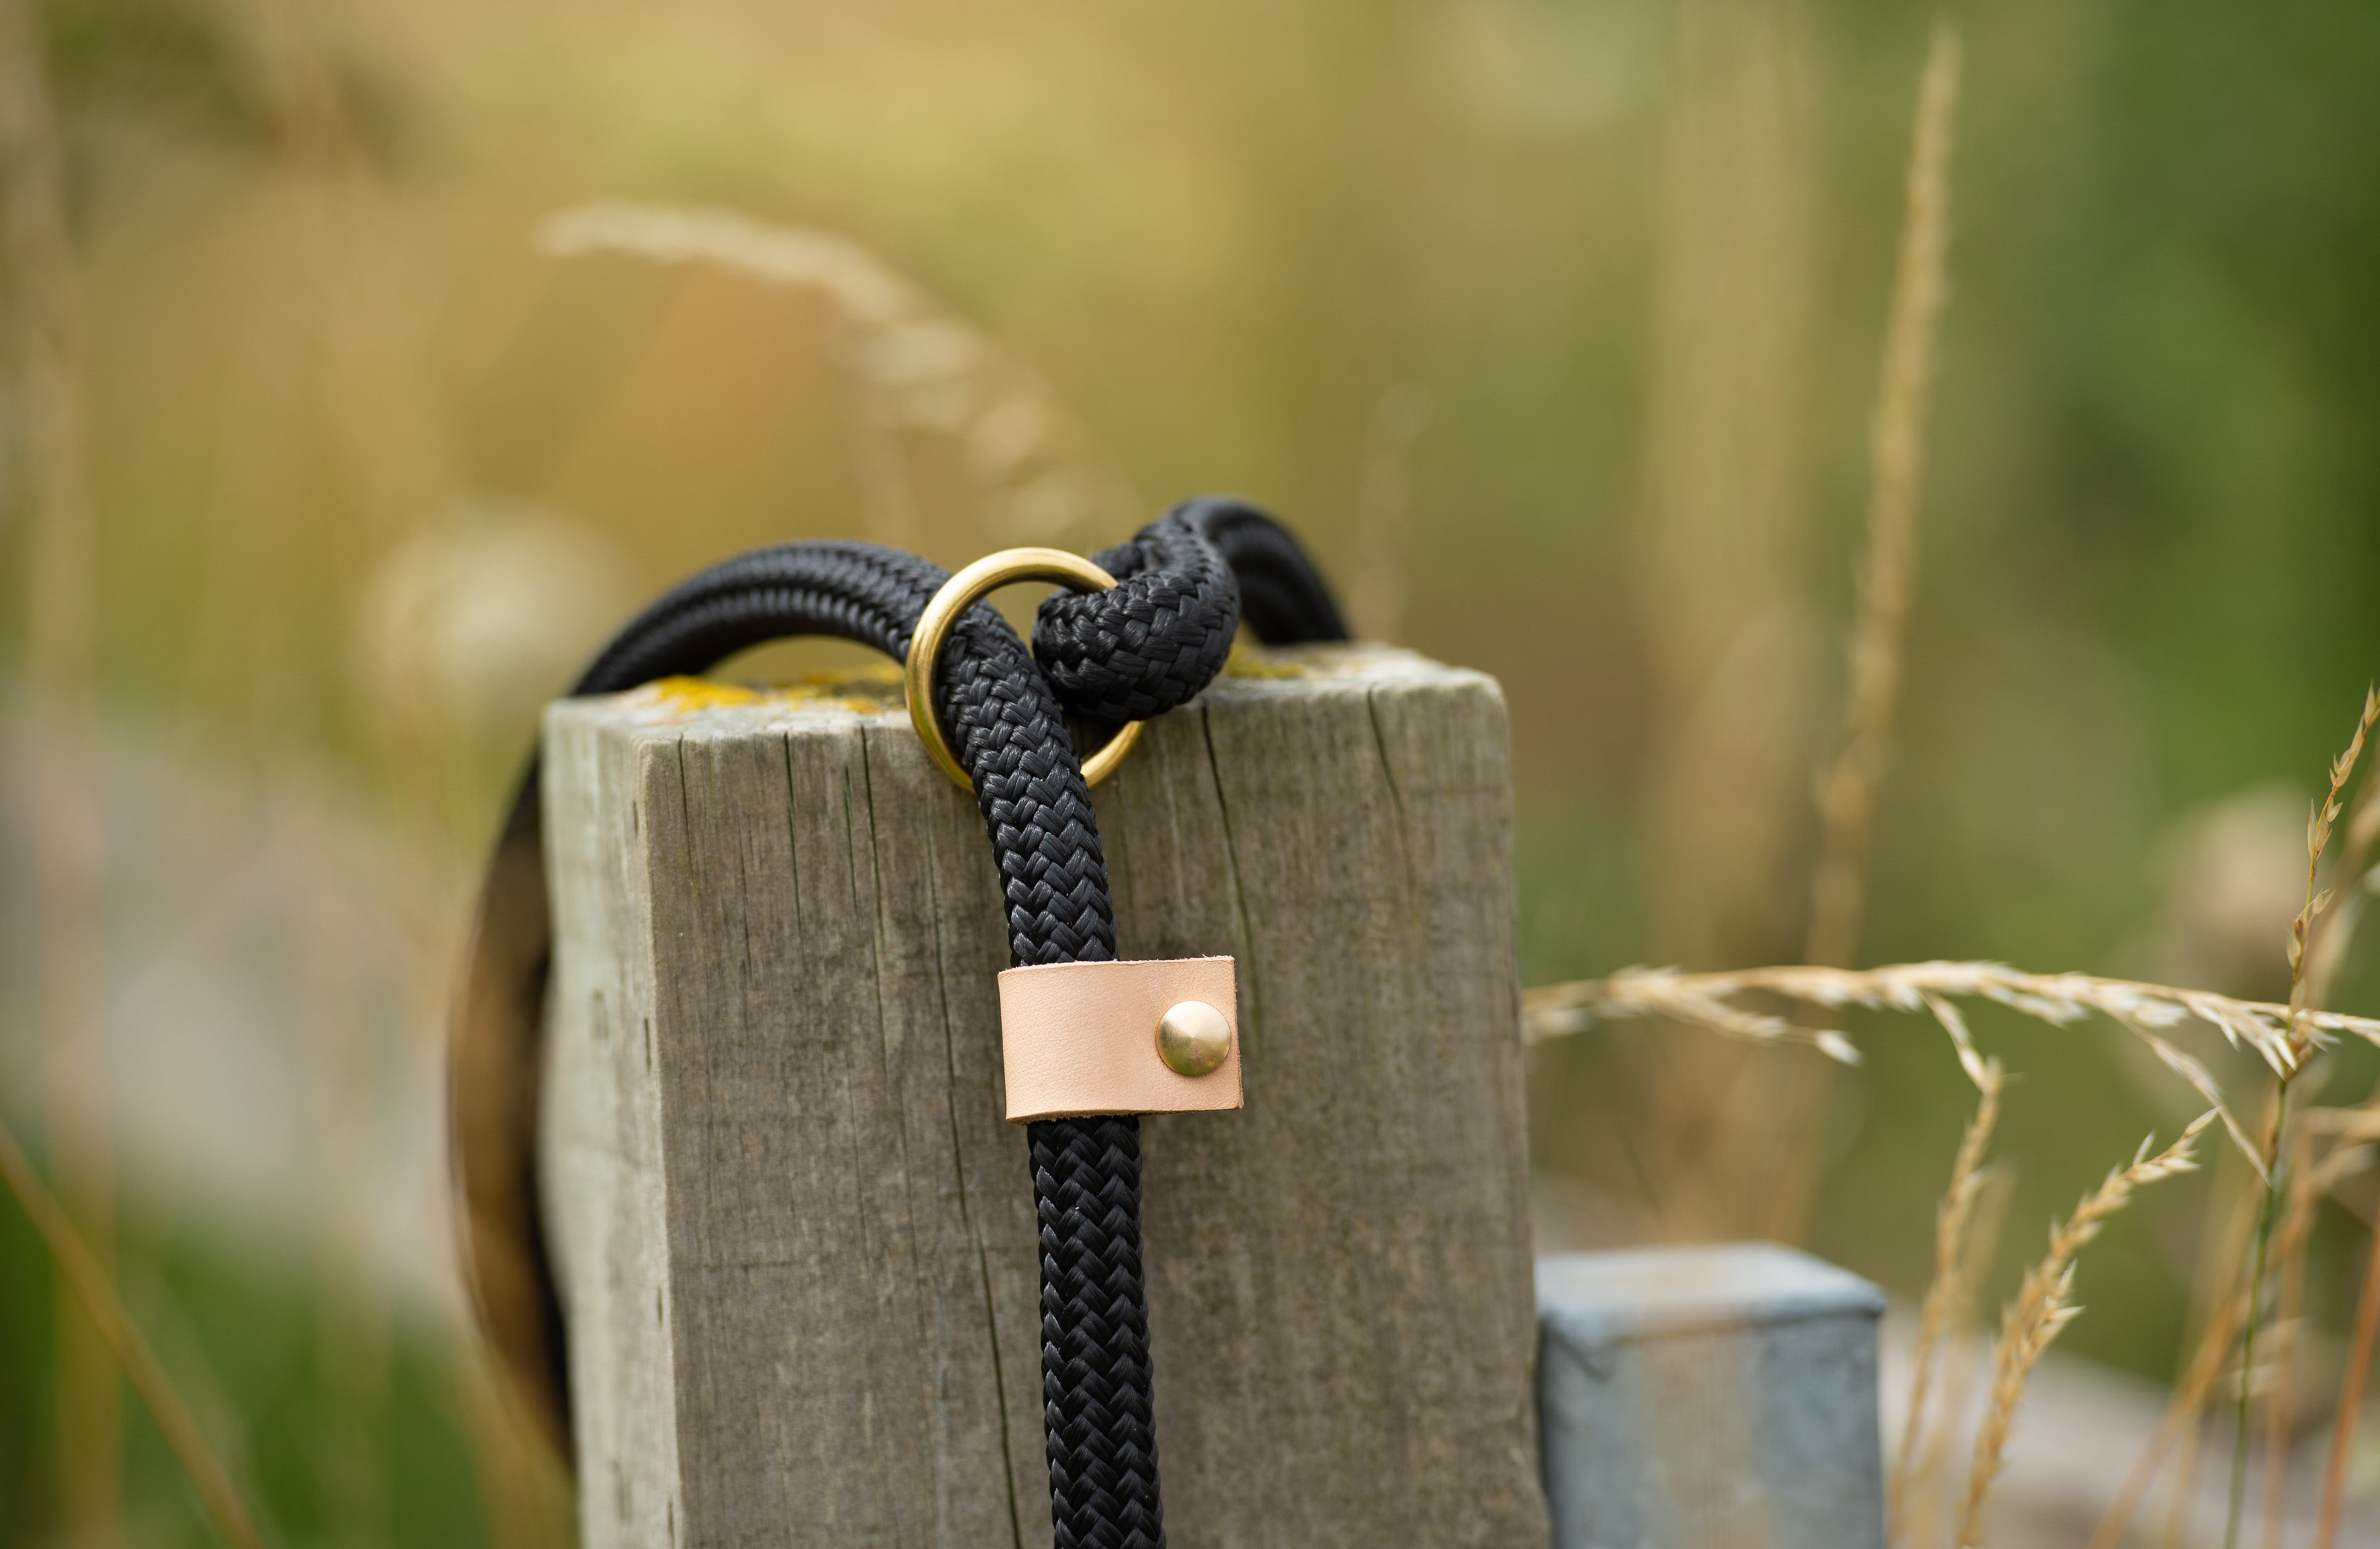 Luxury Rope slip lead in rural setting of the beautiful oxfordshire countryside